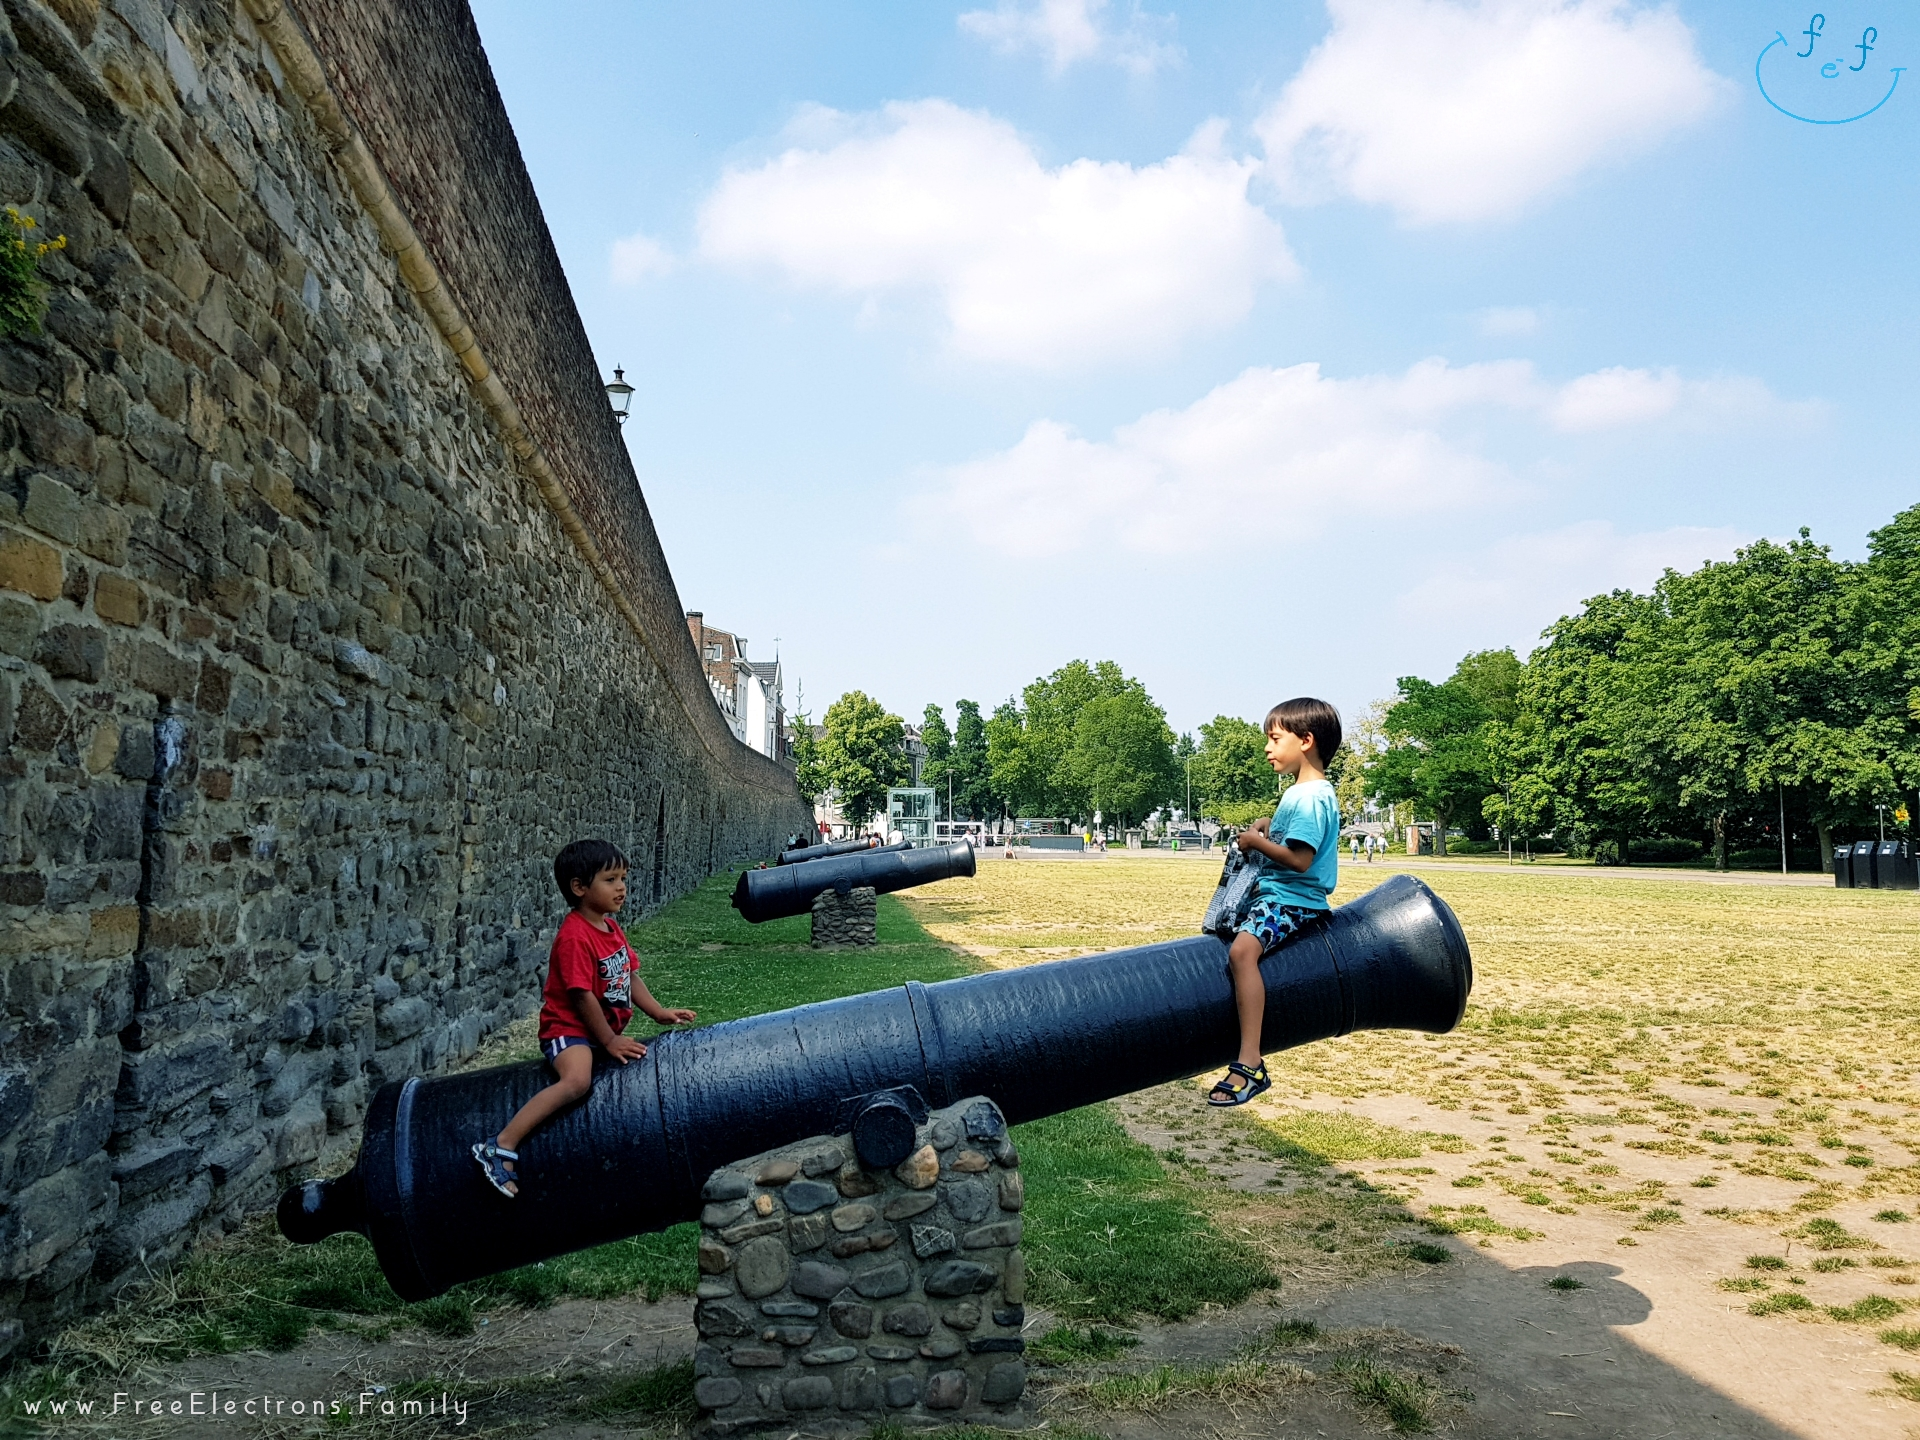 Canons surrounding the defensive walls around the old city of Maastricht within the gate of hell (Helport).    Two young kids playfully riding on one.  #FreeElectrons.Family - camping road trip Europe Maastricht